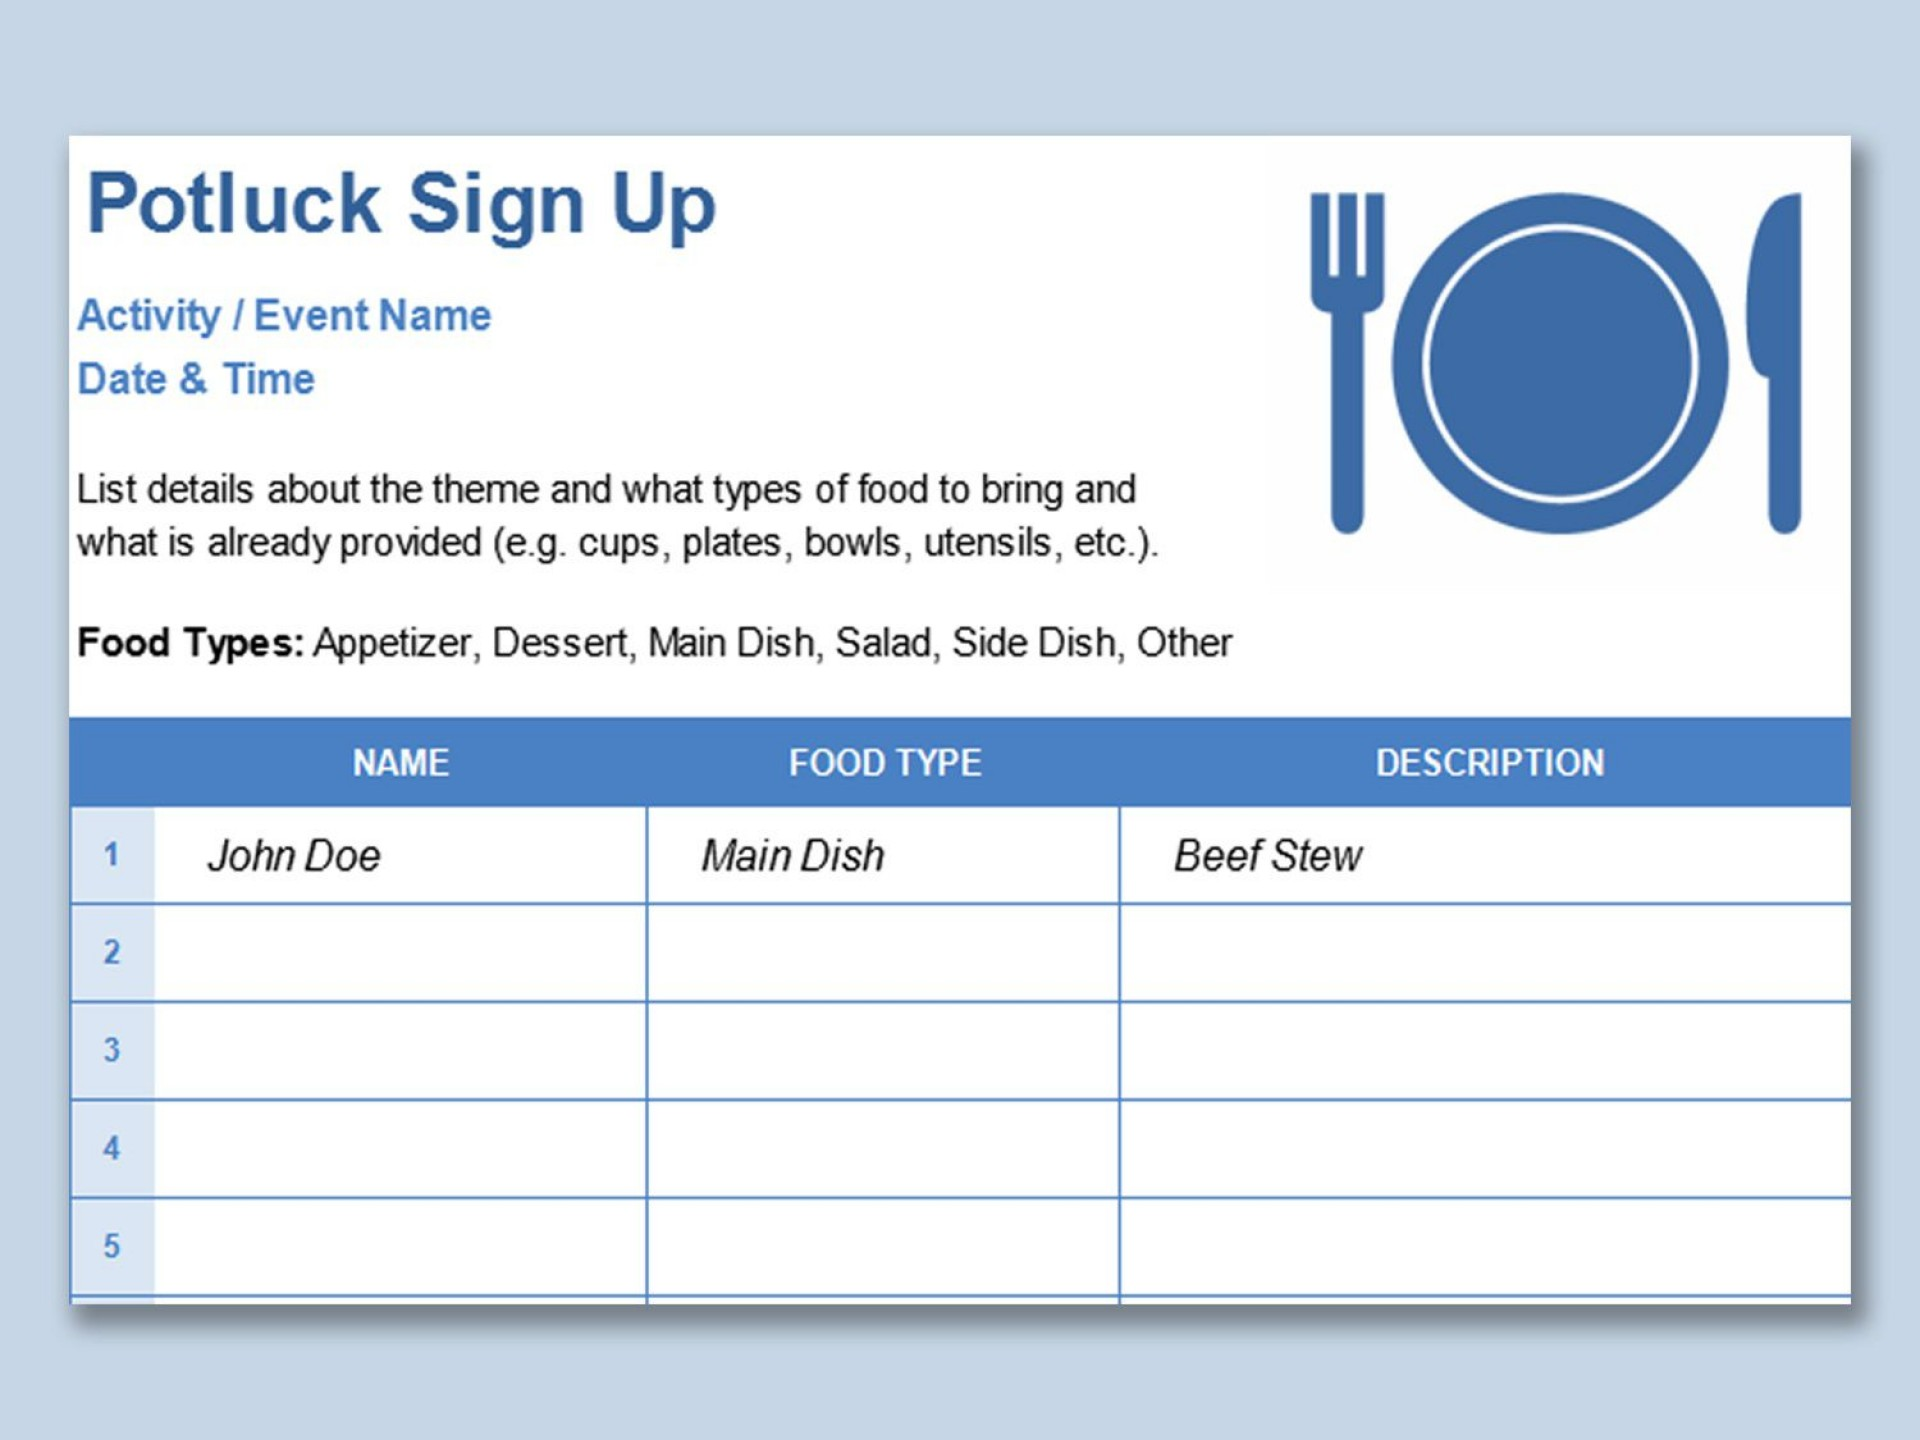 001 Outstanding Free Signup Sheet Template Inspiration  Sign Up For Potluck Google Doc Volunteer In1920